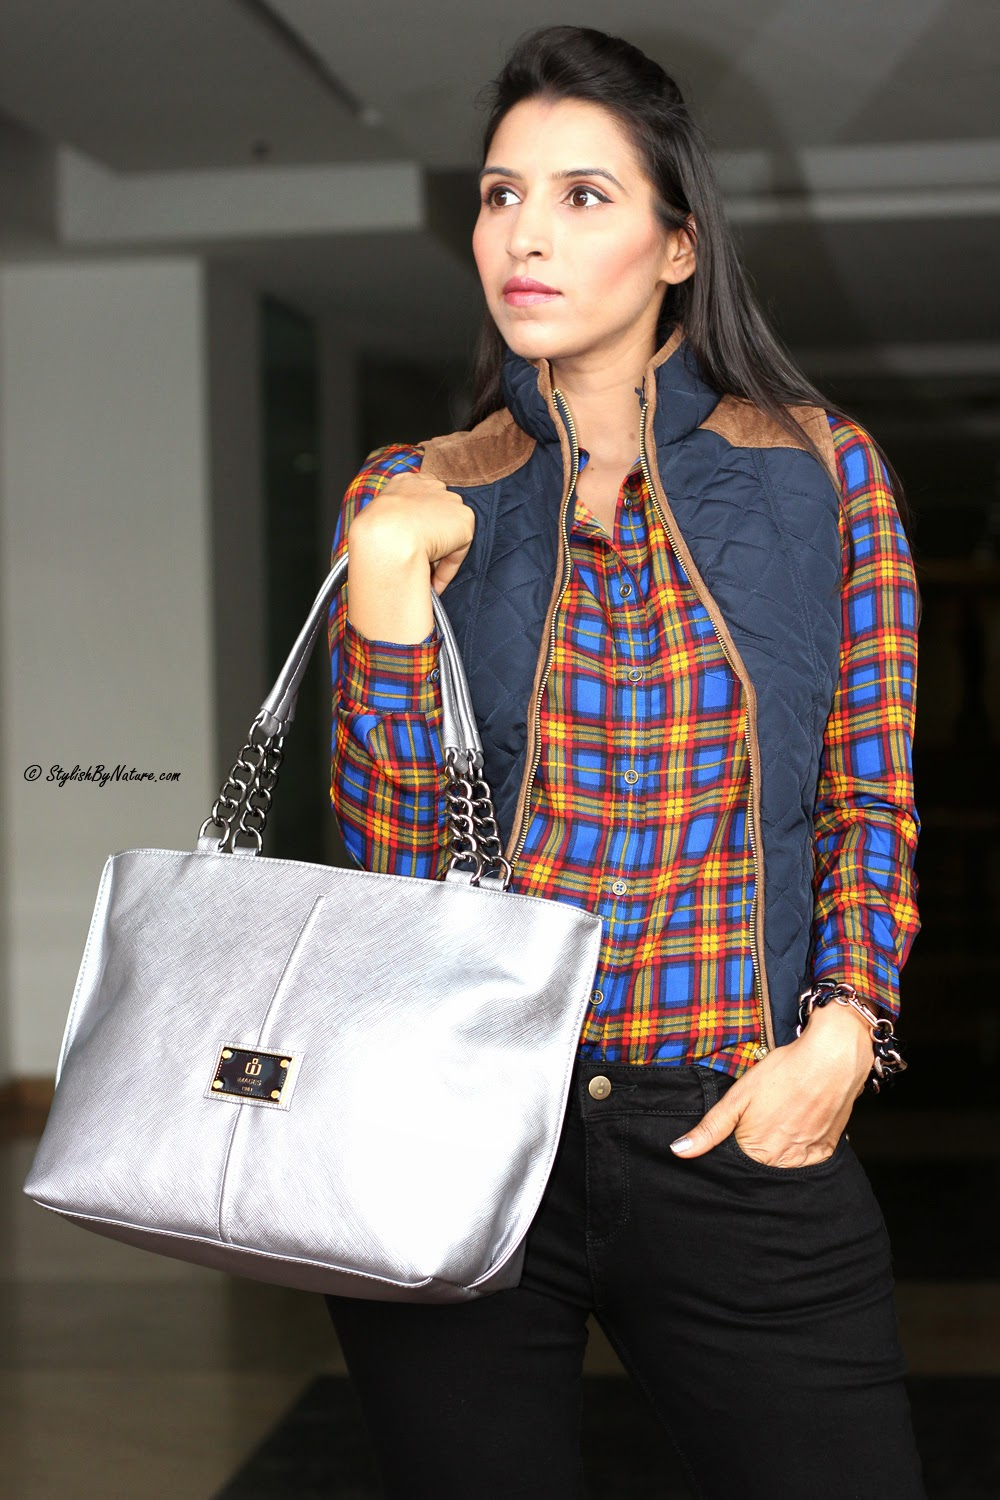 http://www.imagesbags.com/collections/fashion/products/xanadu-s2072-pewter